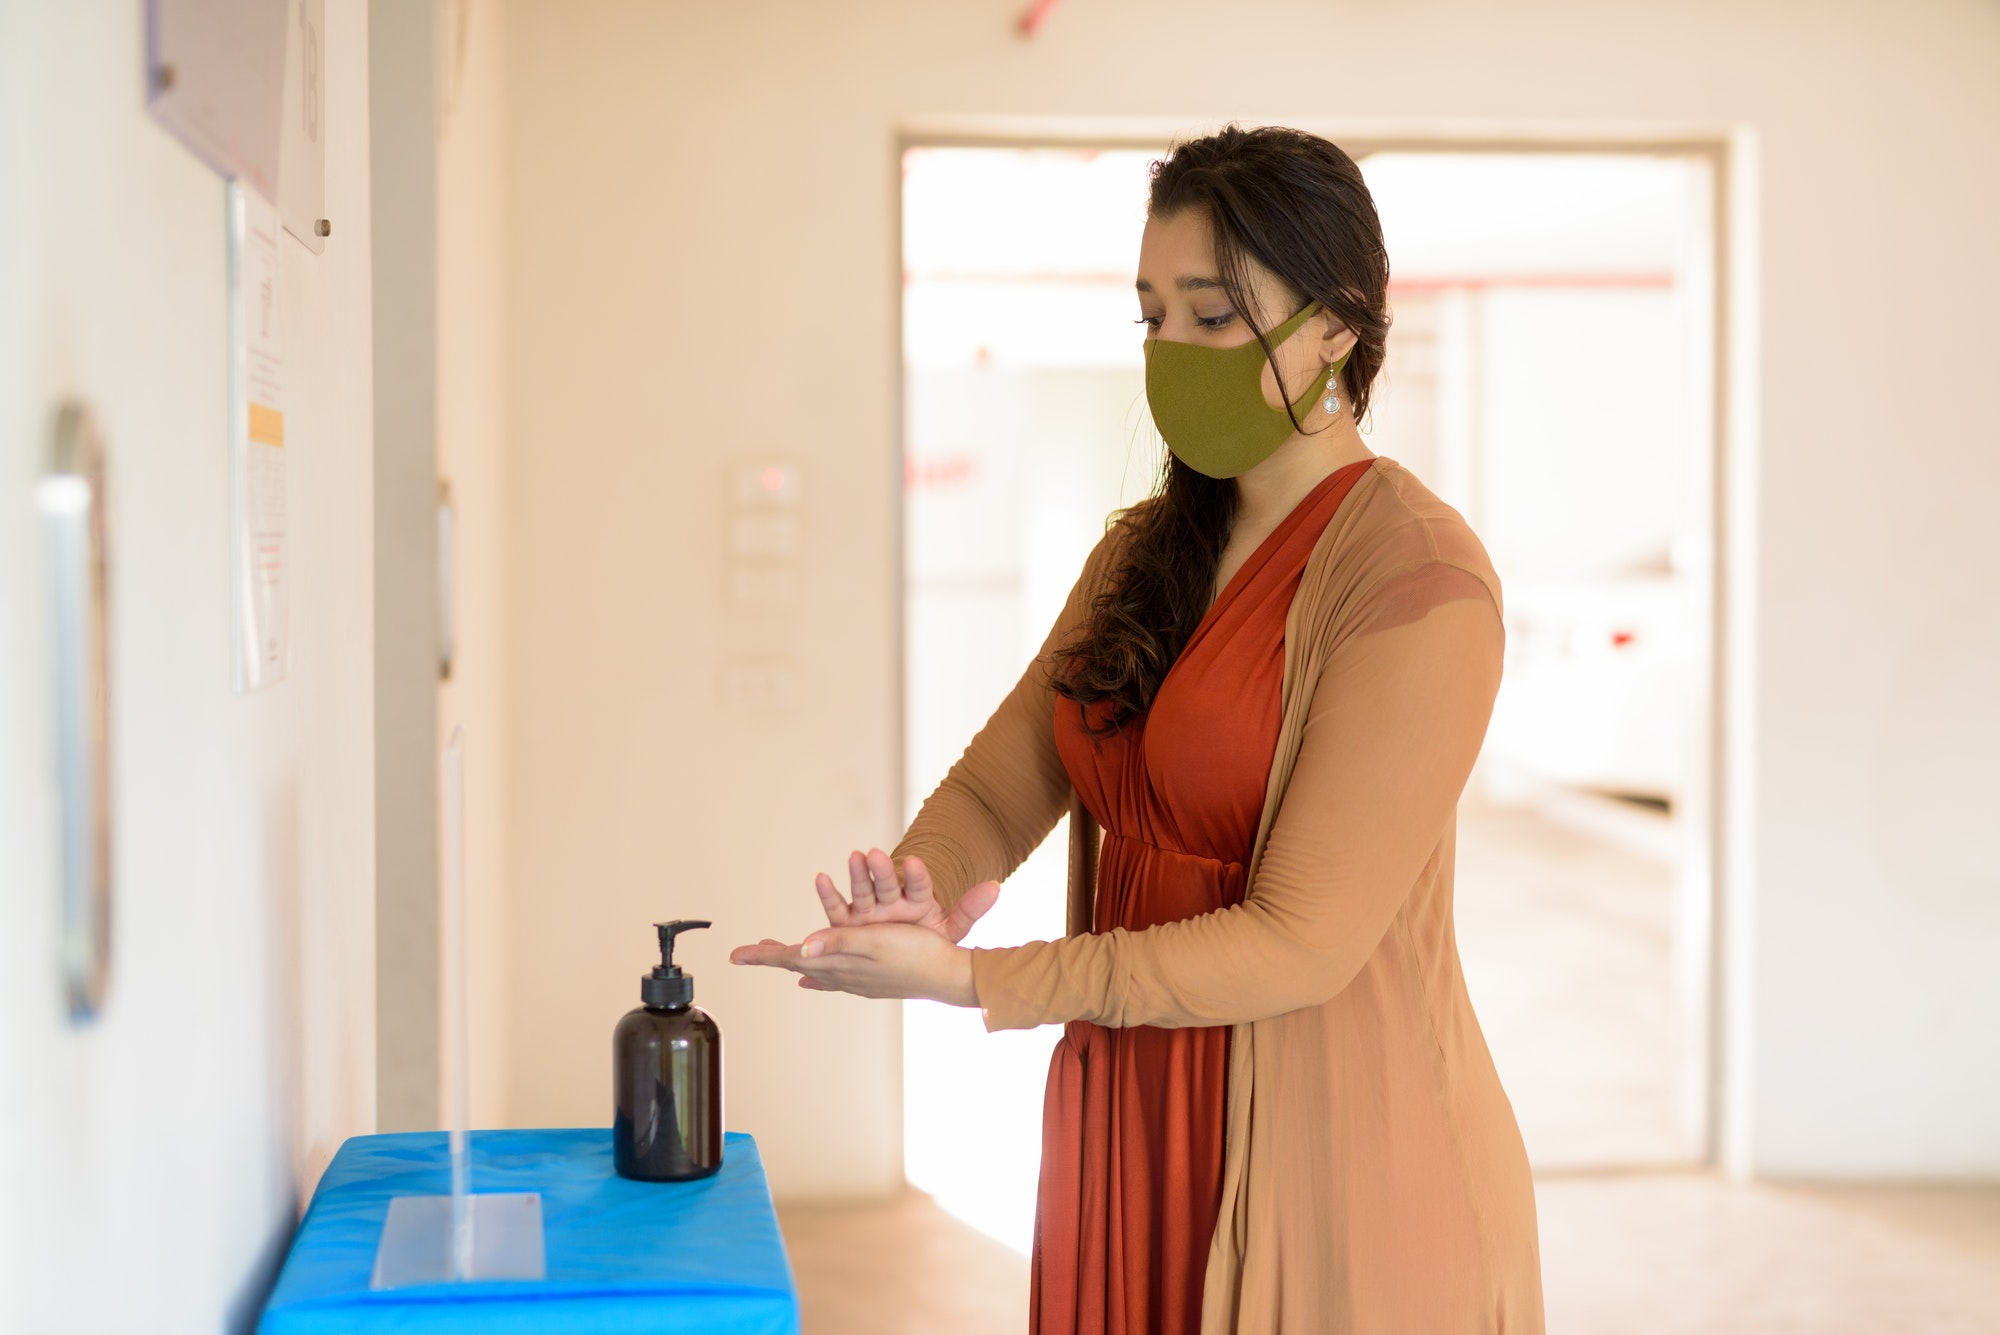 Young Indian woman with mask using hand sanitizer and rubbing hands together